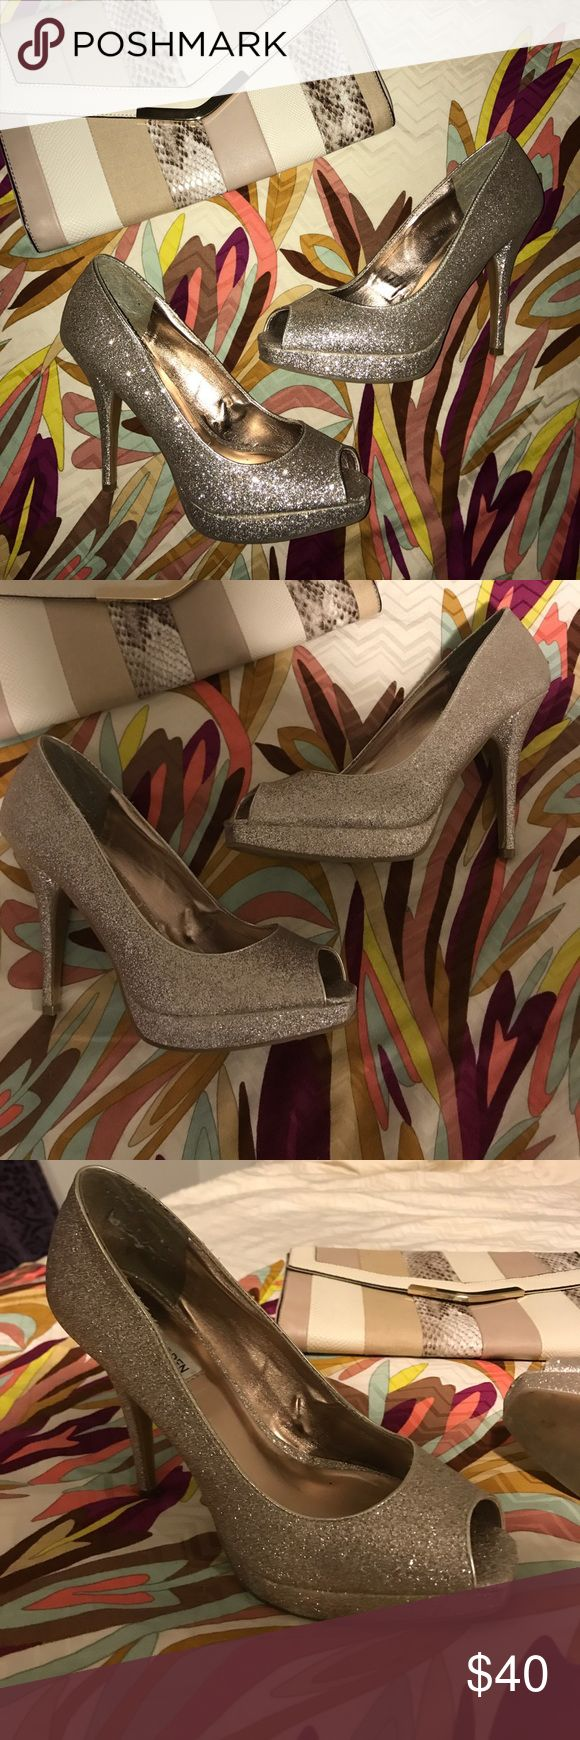 Gold Peep Toe Heels Beautiful shoes for a night out! You'll be sure to shine in these beauties. Still look like new. Approximately 4.5 inch heel Steve Madden Shoes Heels